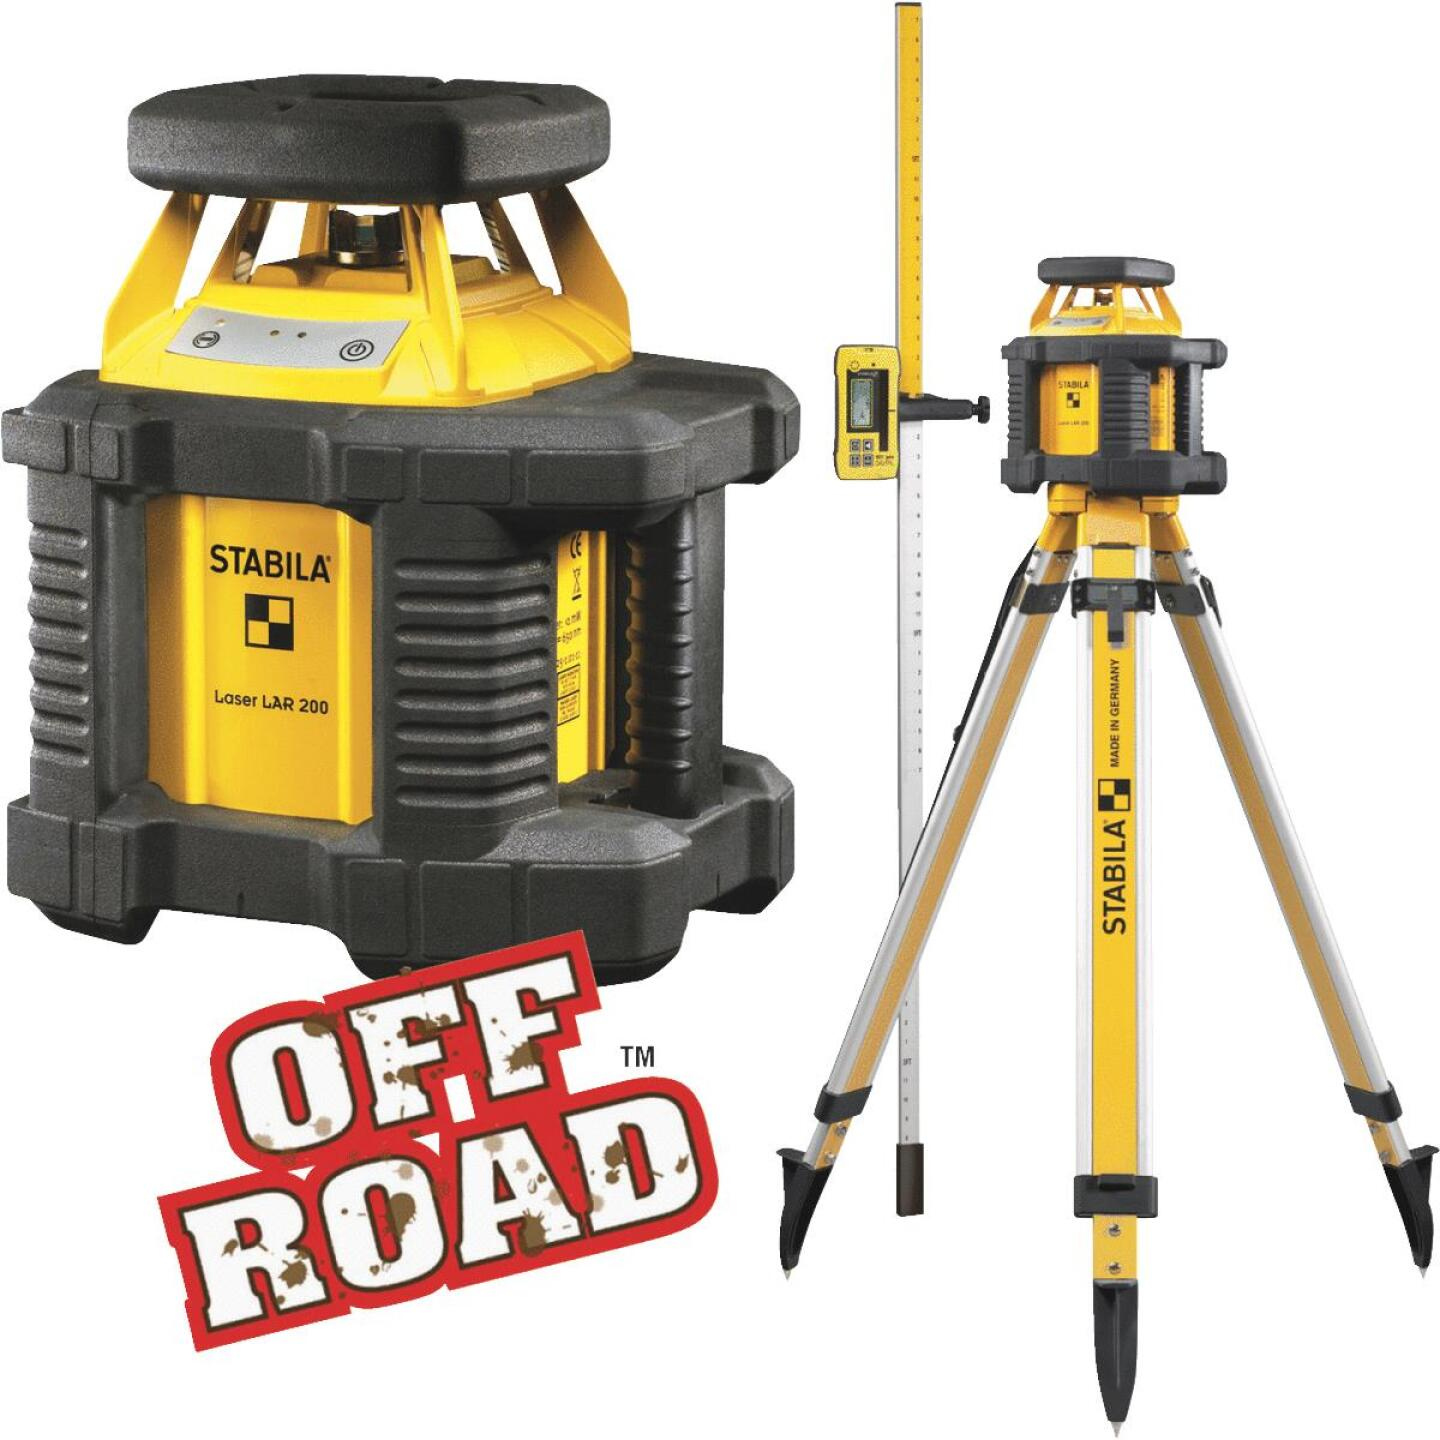 Stabila Off Road 100 Ft. Self-Leveling Rotary Laser Level Image 1